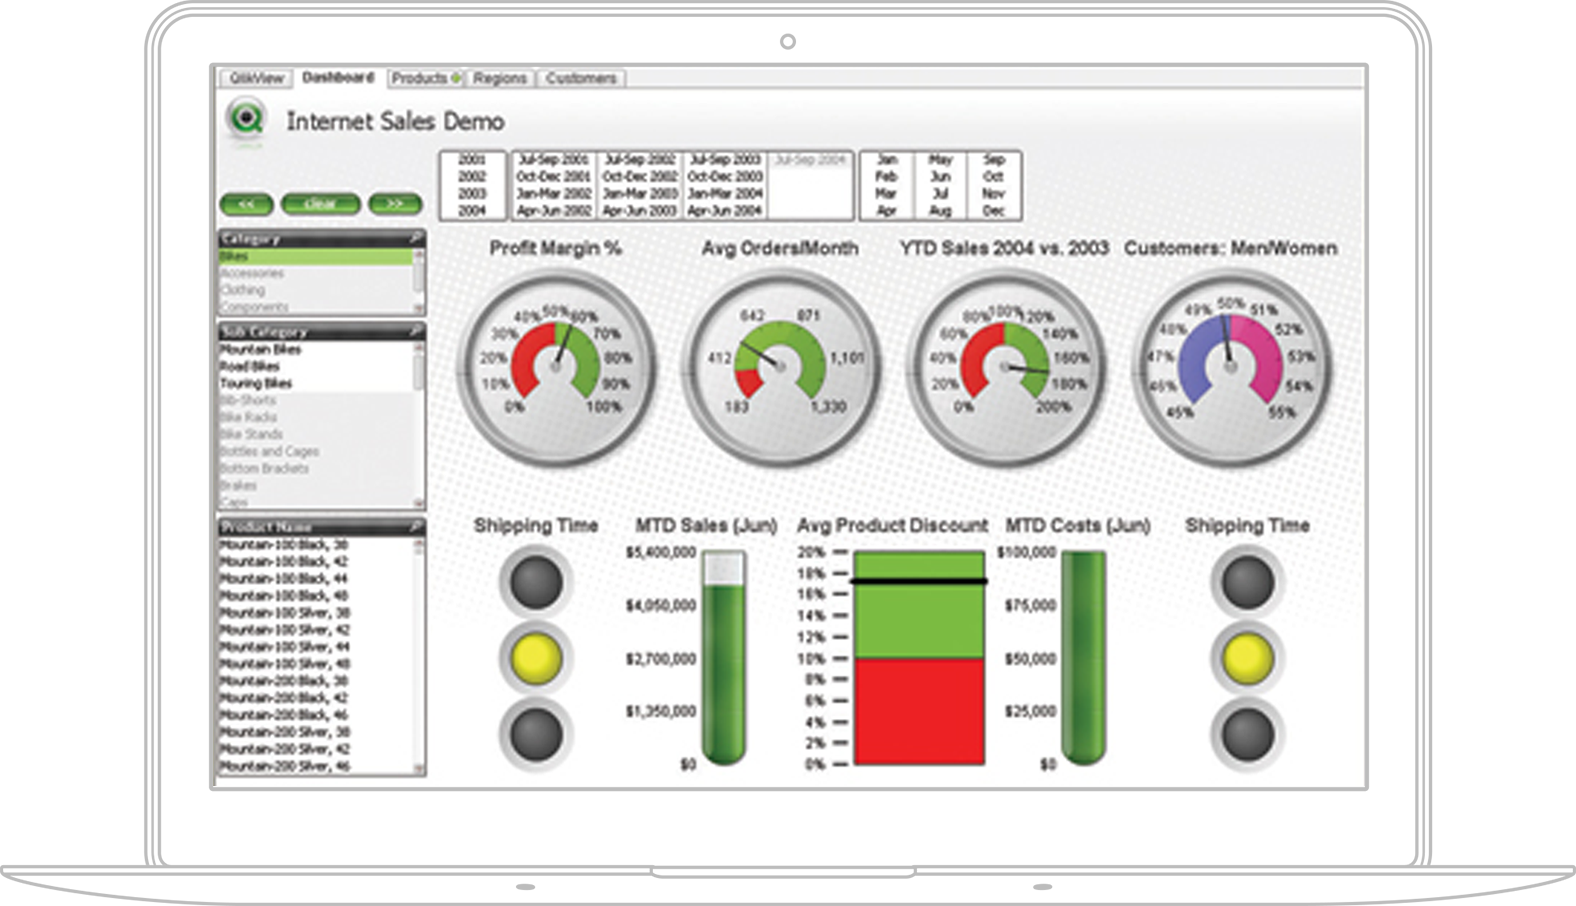 Take a closer look at QlikView